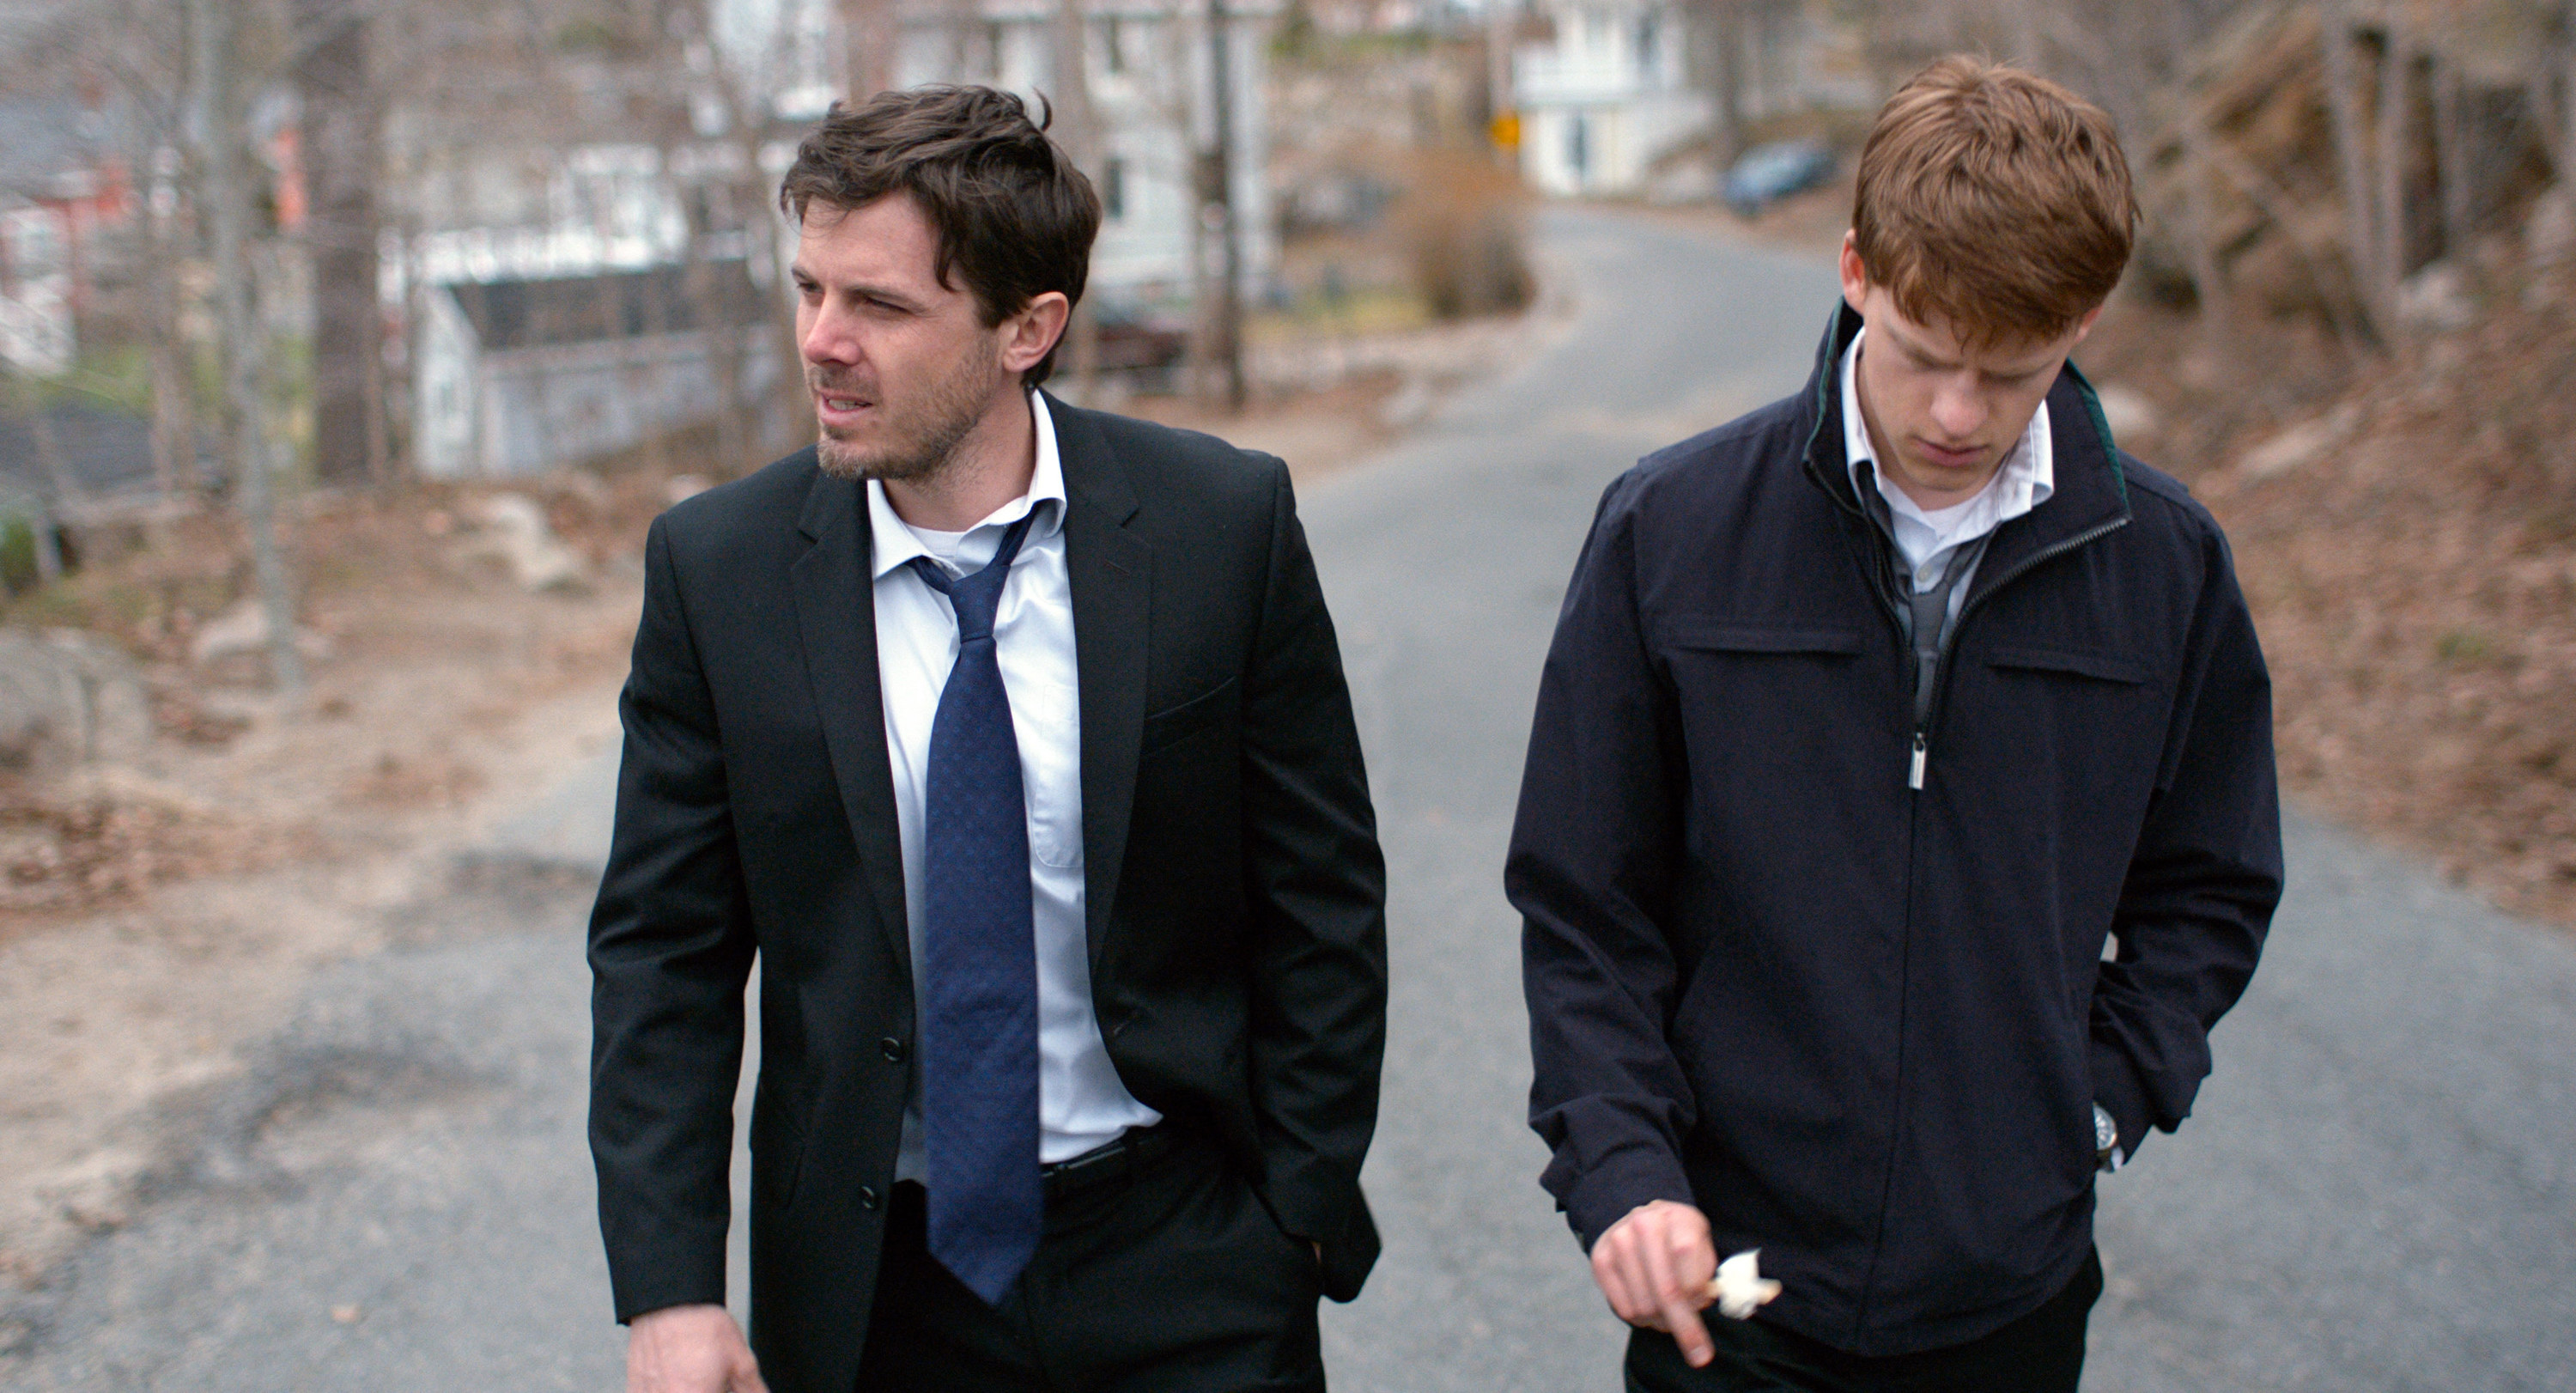 Case Affleck and Lucas Hedges walk down a road